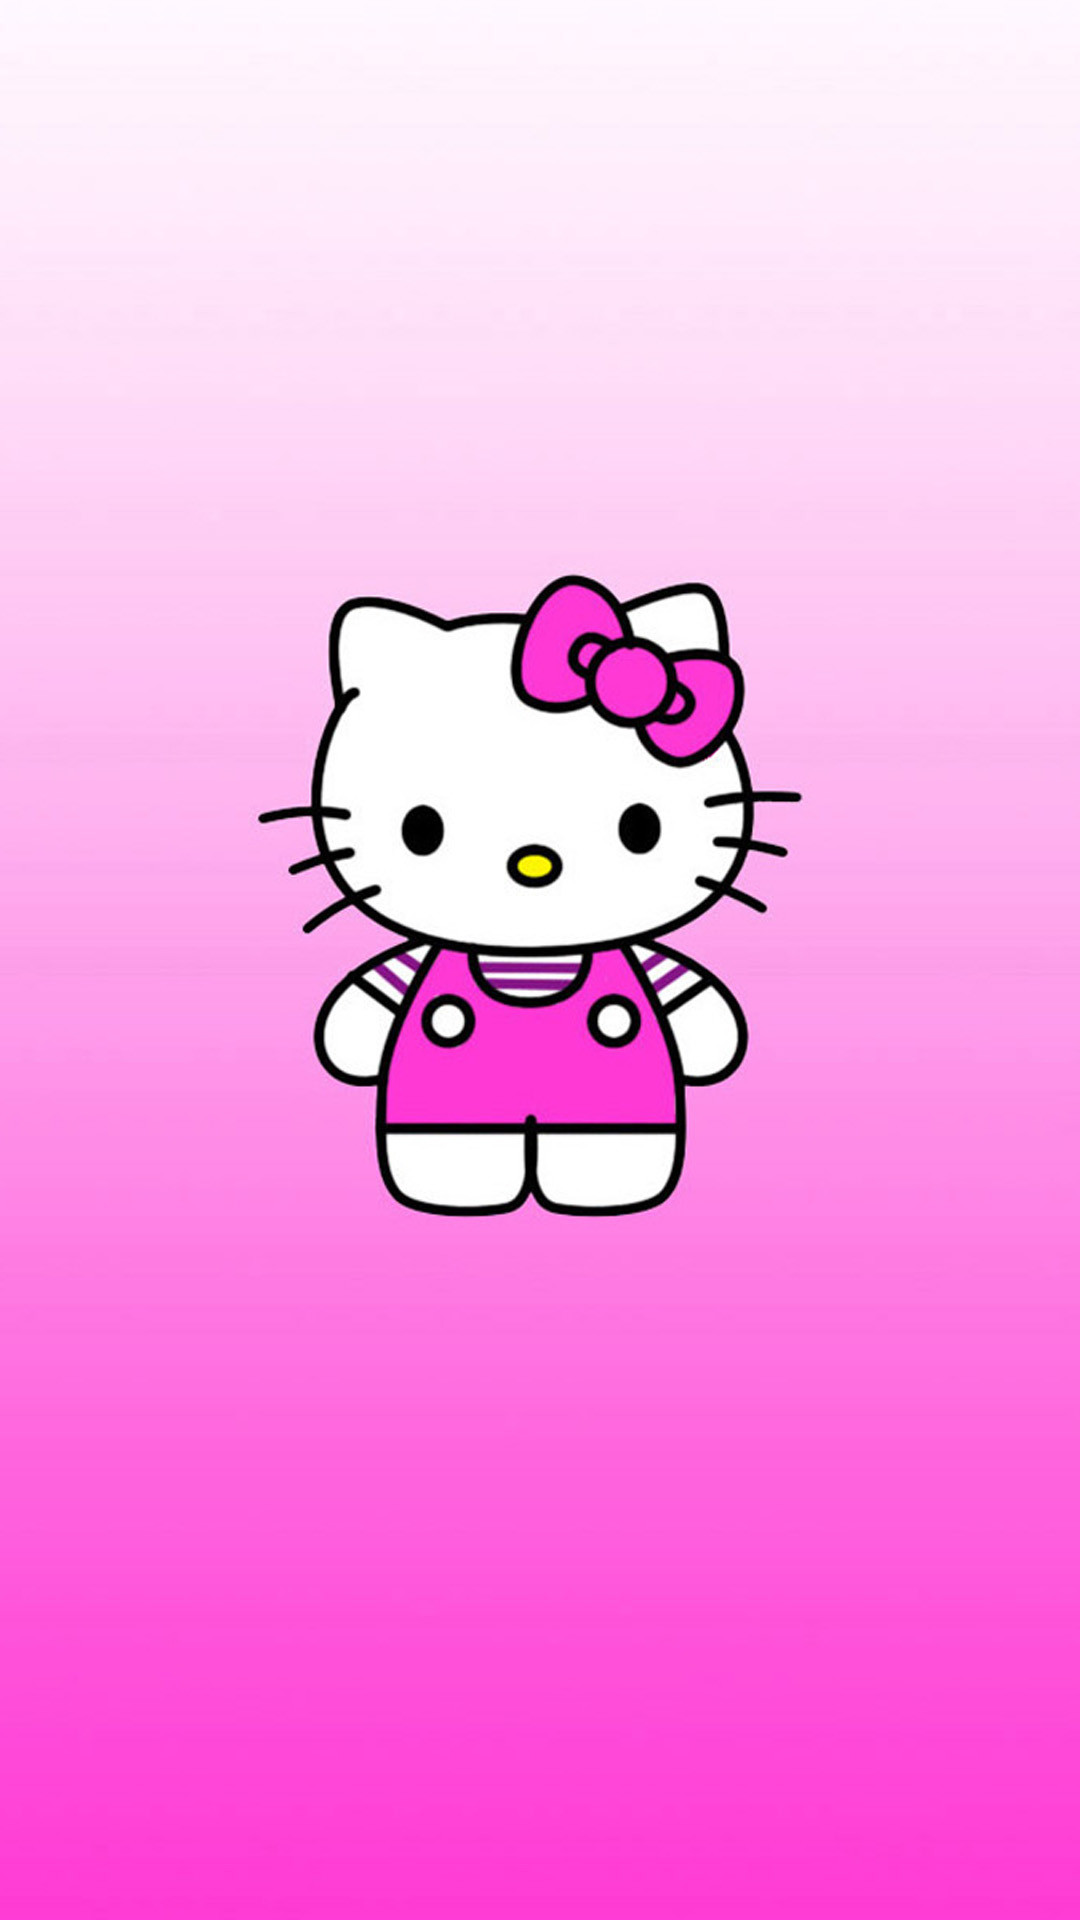 1080x1920 File attachment for Apple iPhone 6 Plus HD Wallpaper - Hello Kitty Images